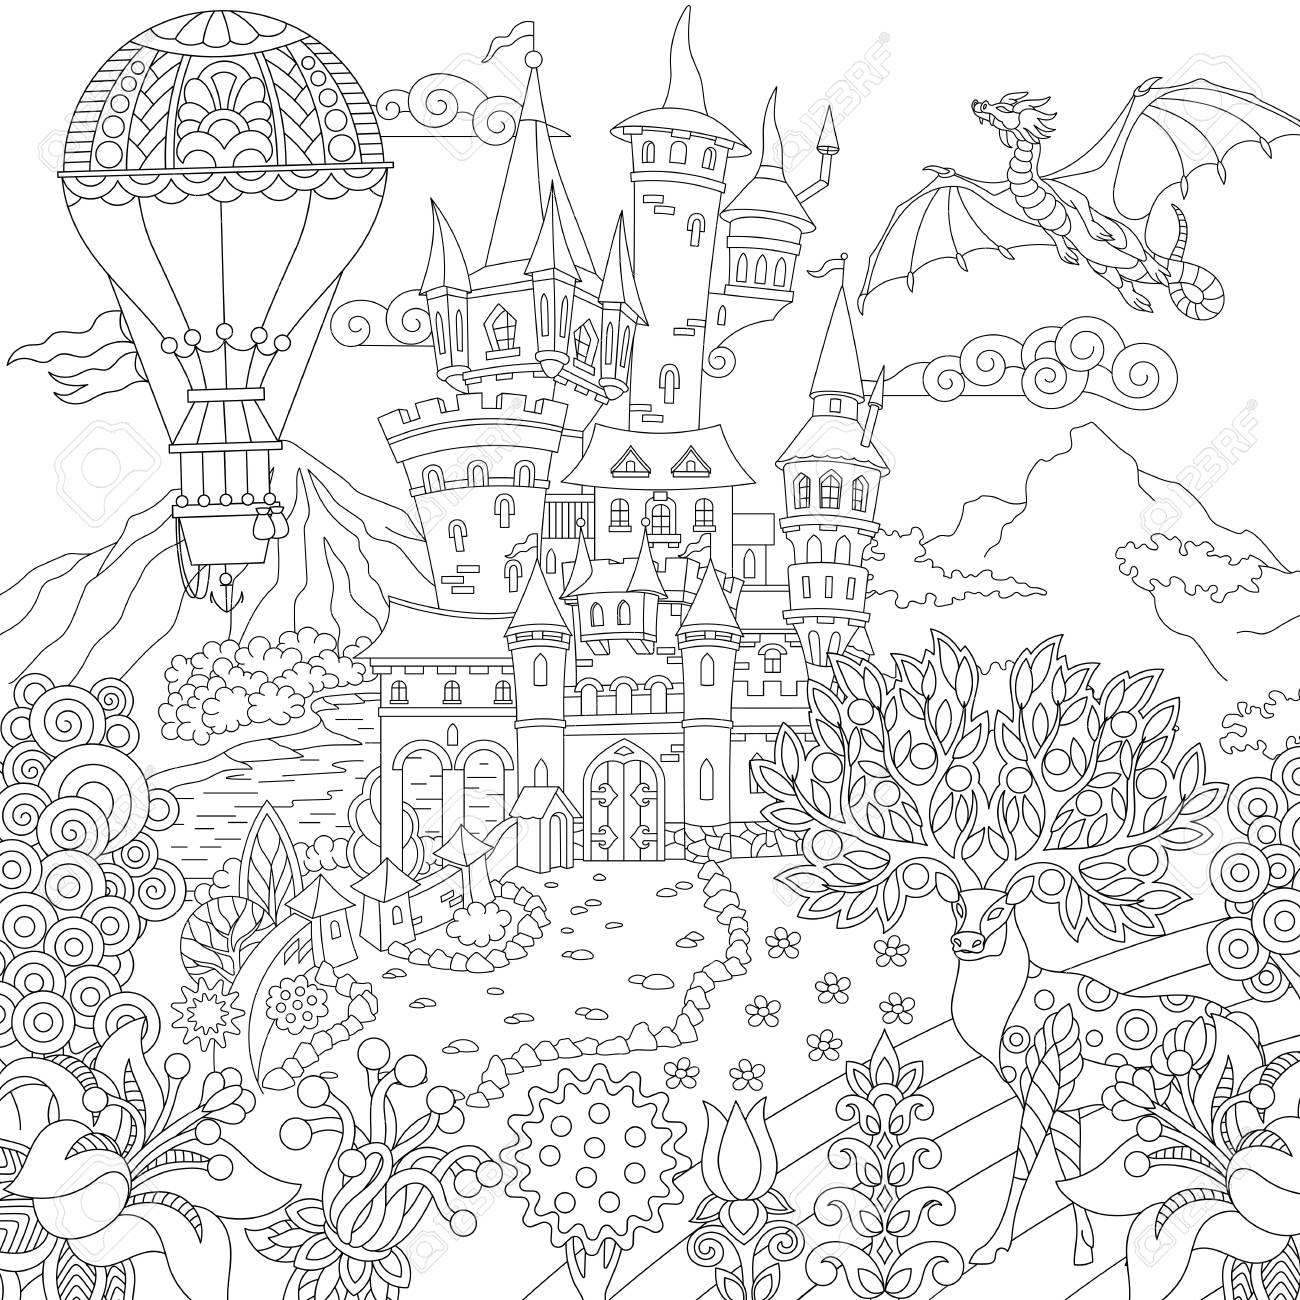 Fairy tale picture. Fairytale landscape with vintage castle,..